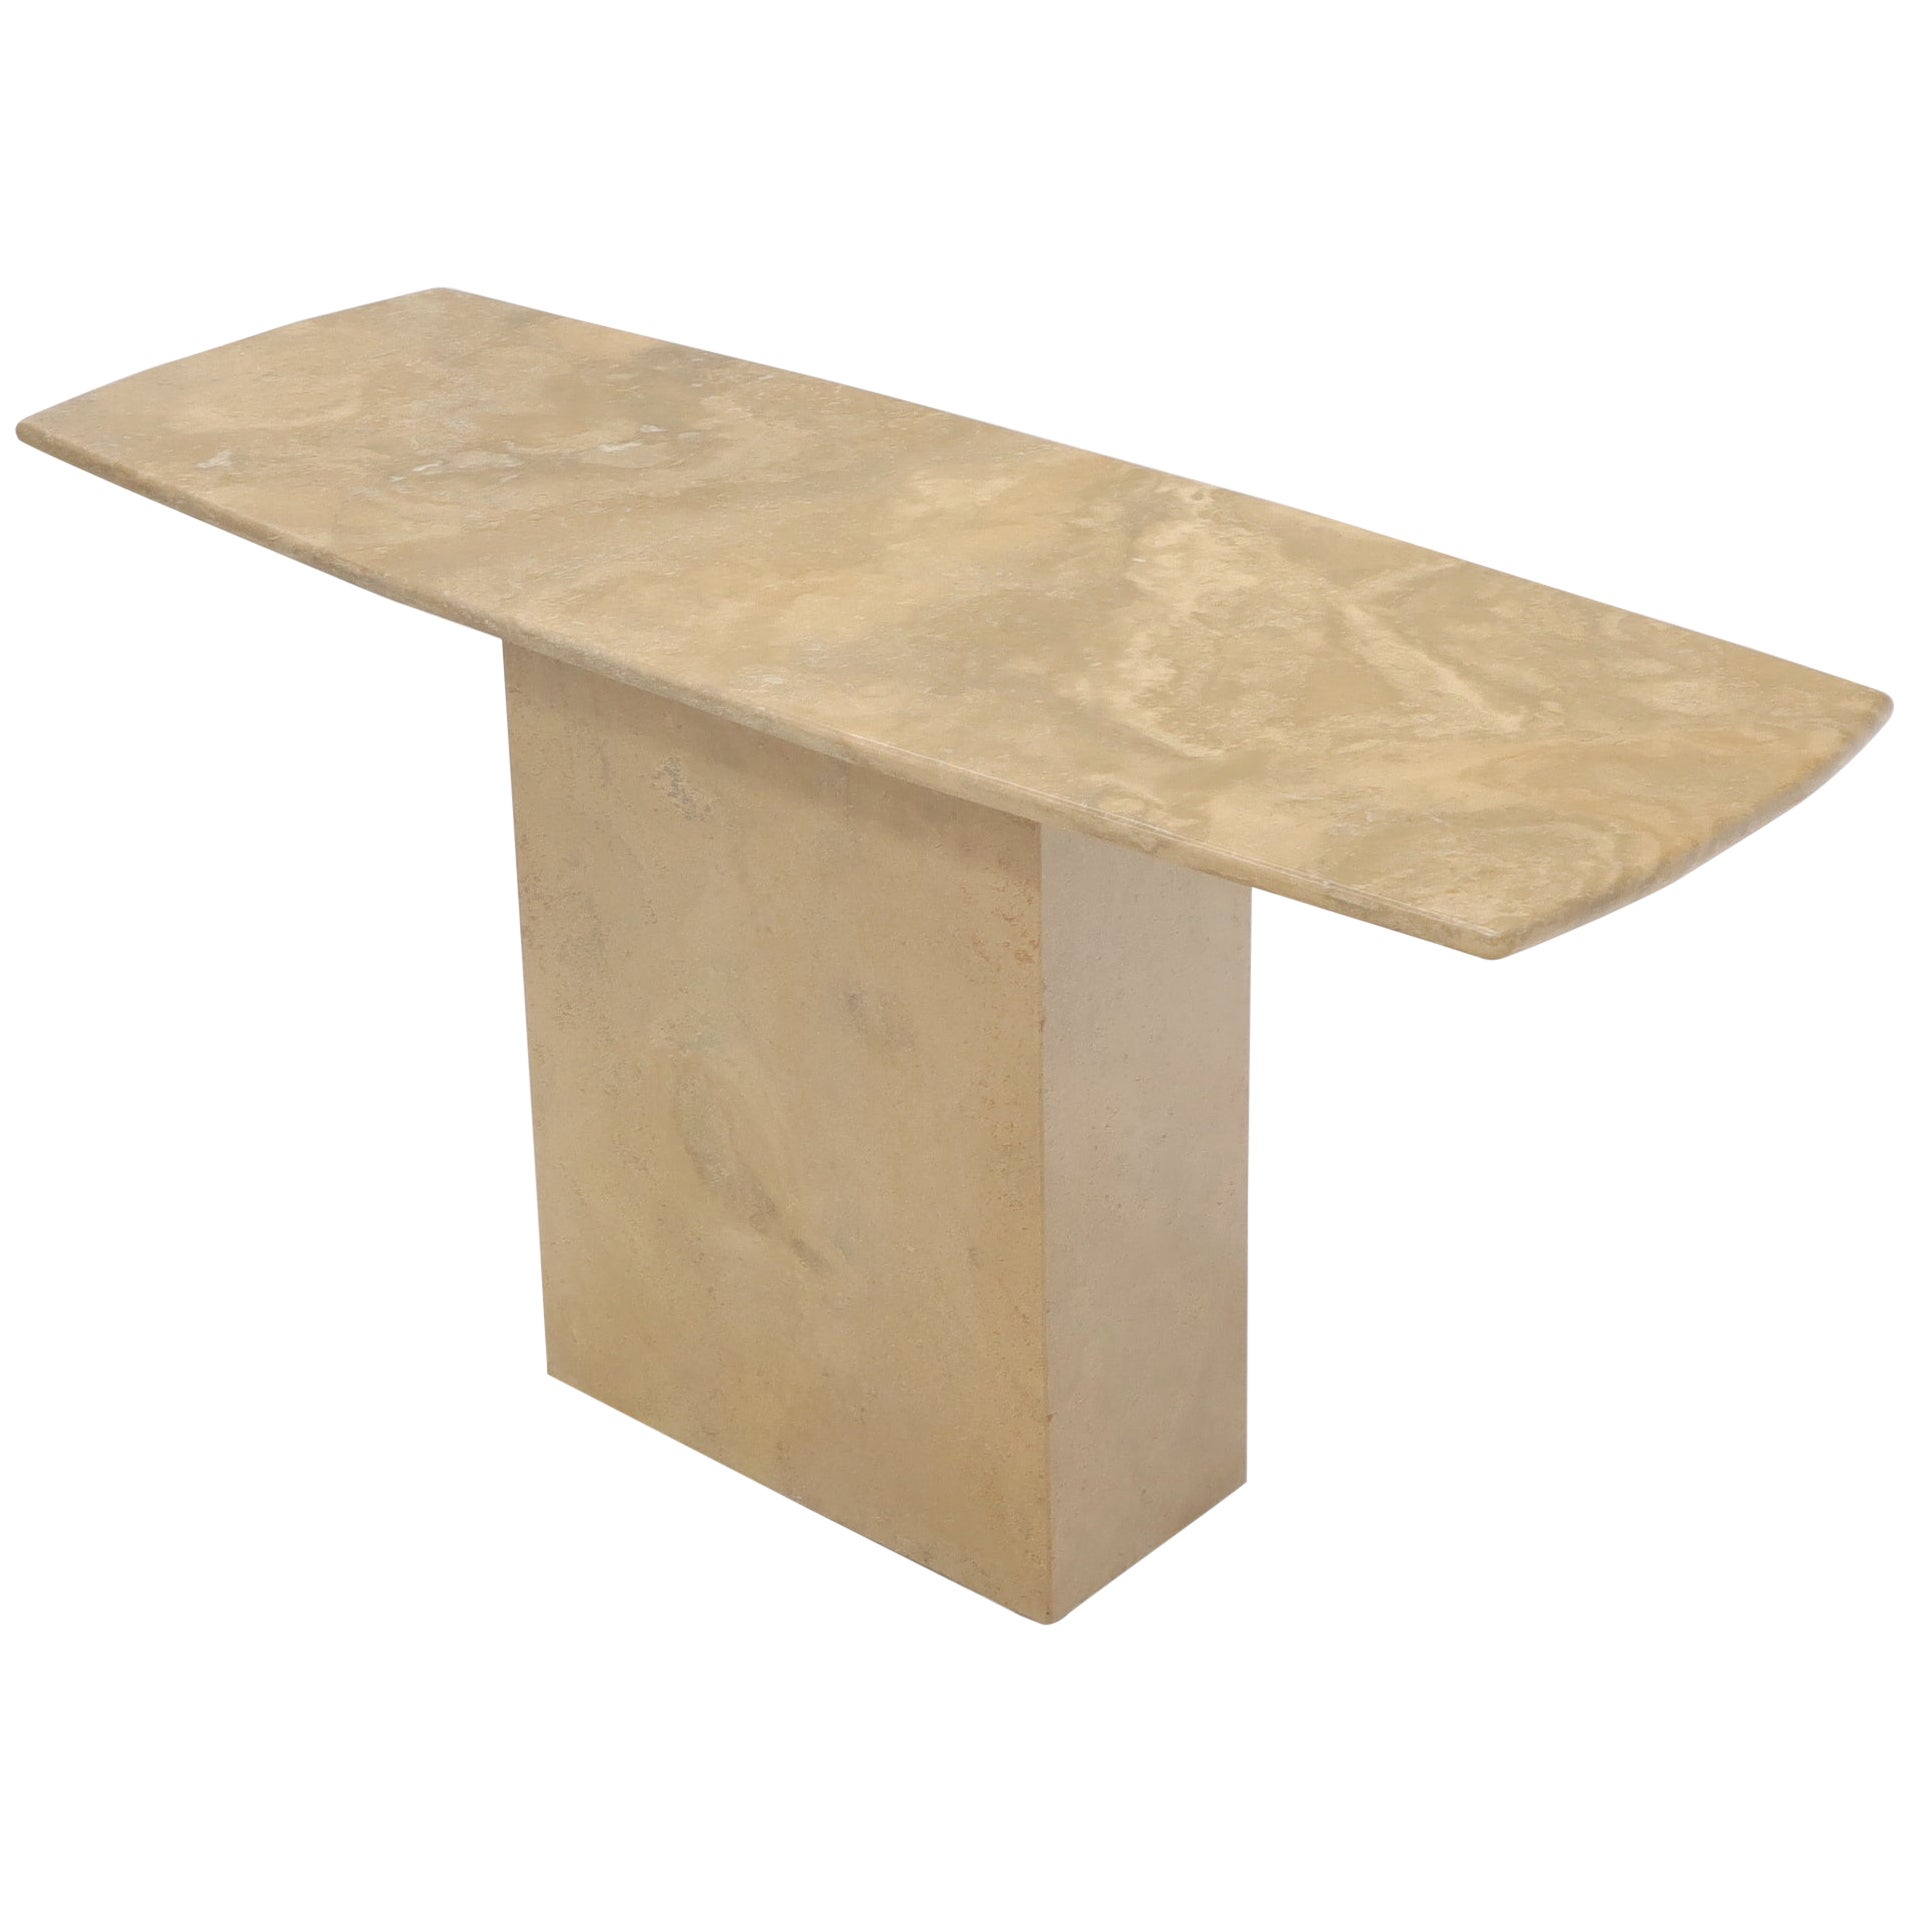 Mid-Century Modern Marble or Travertine Single Pedestal Console